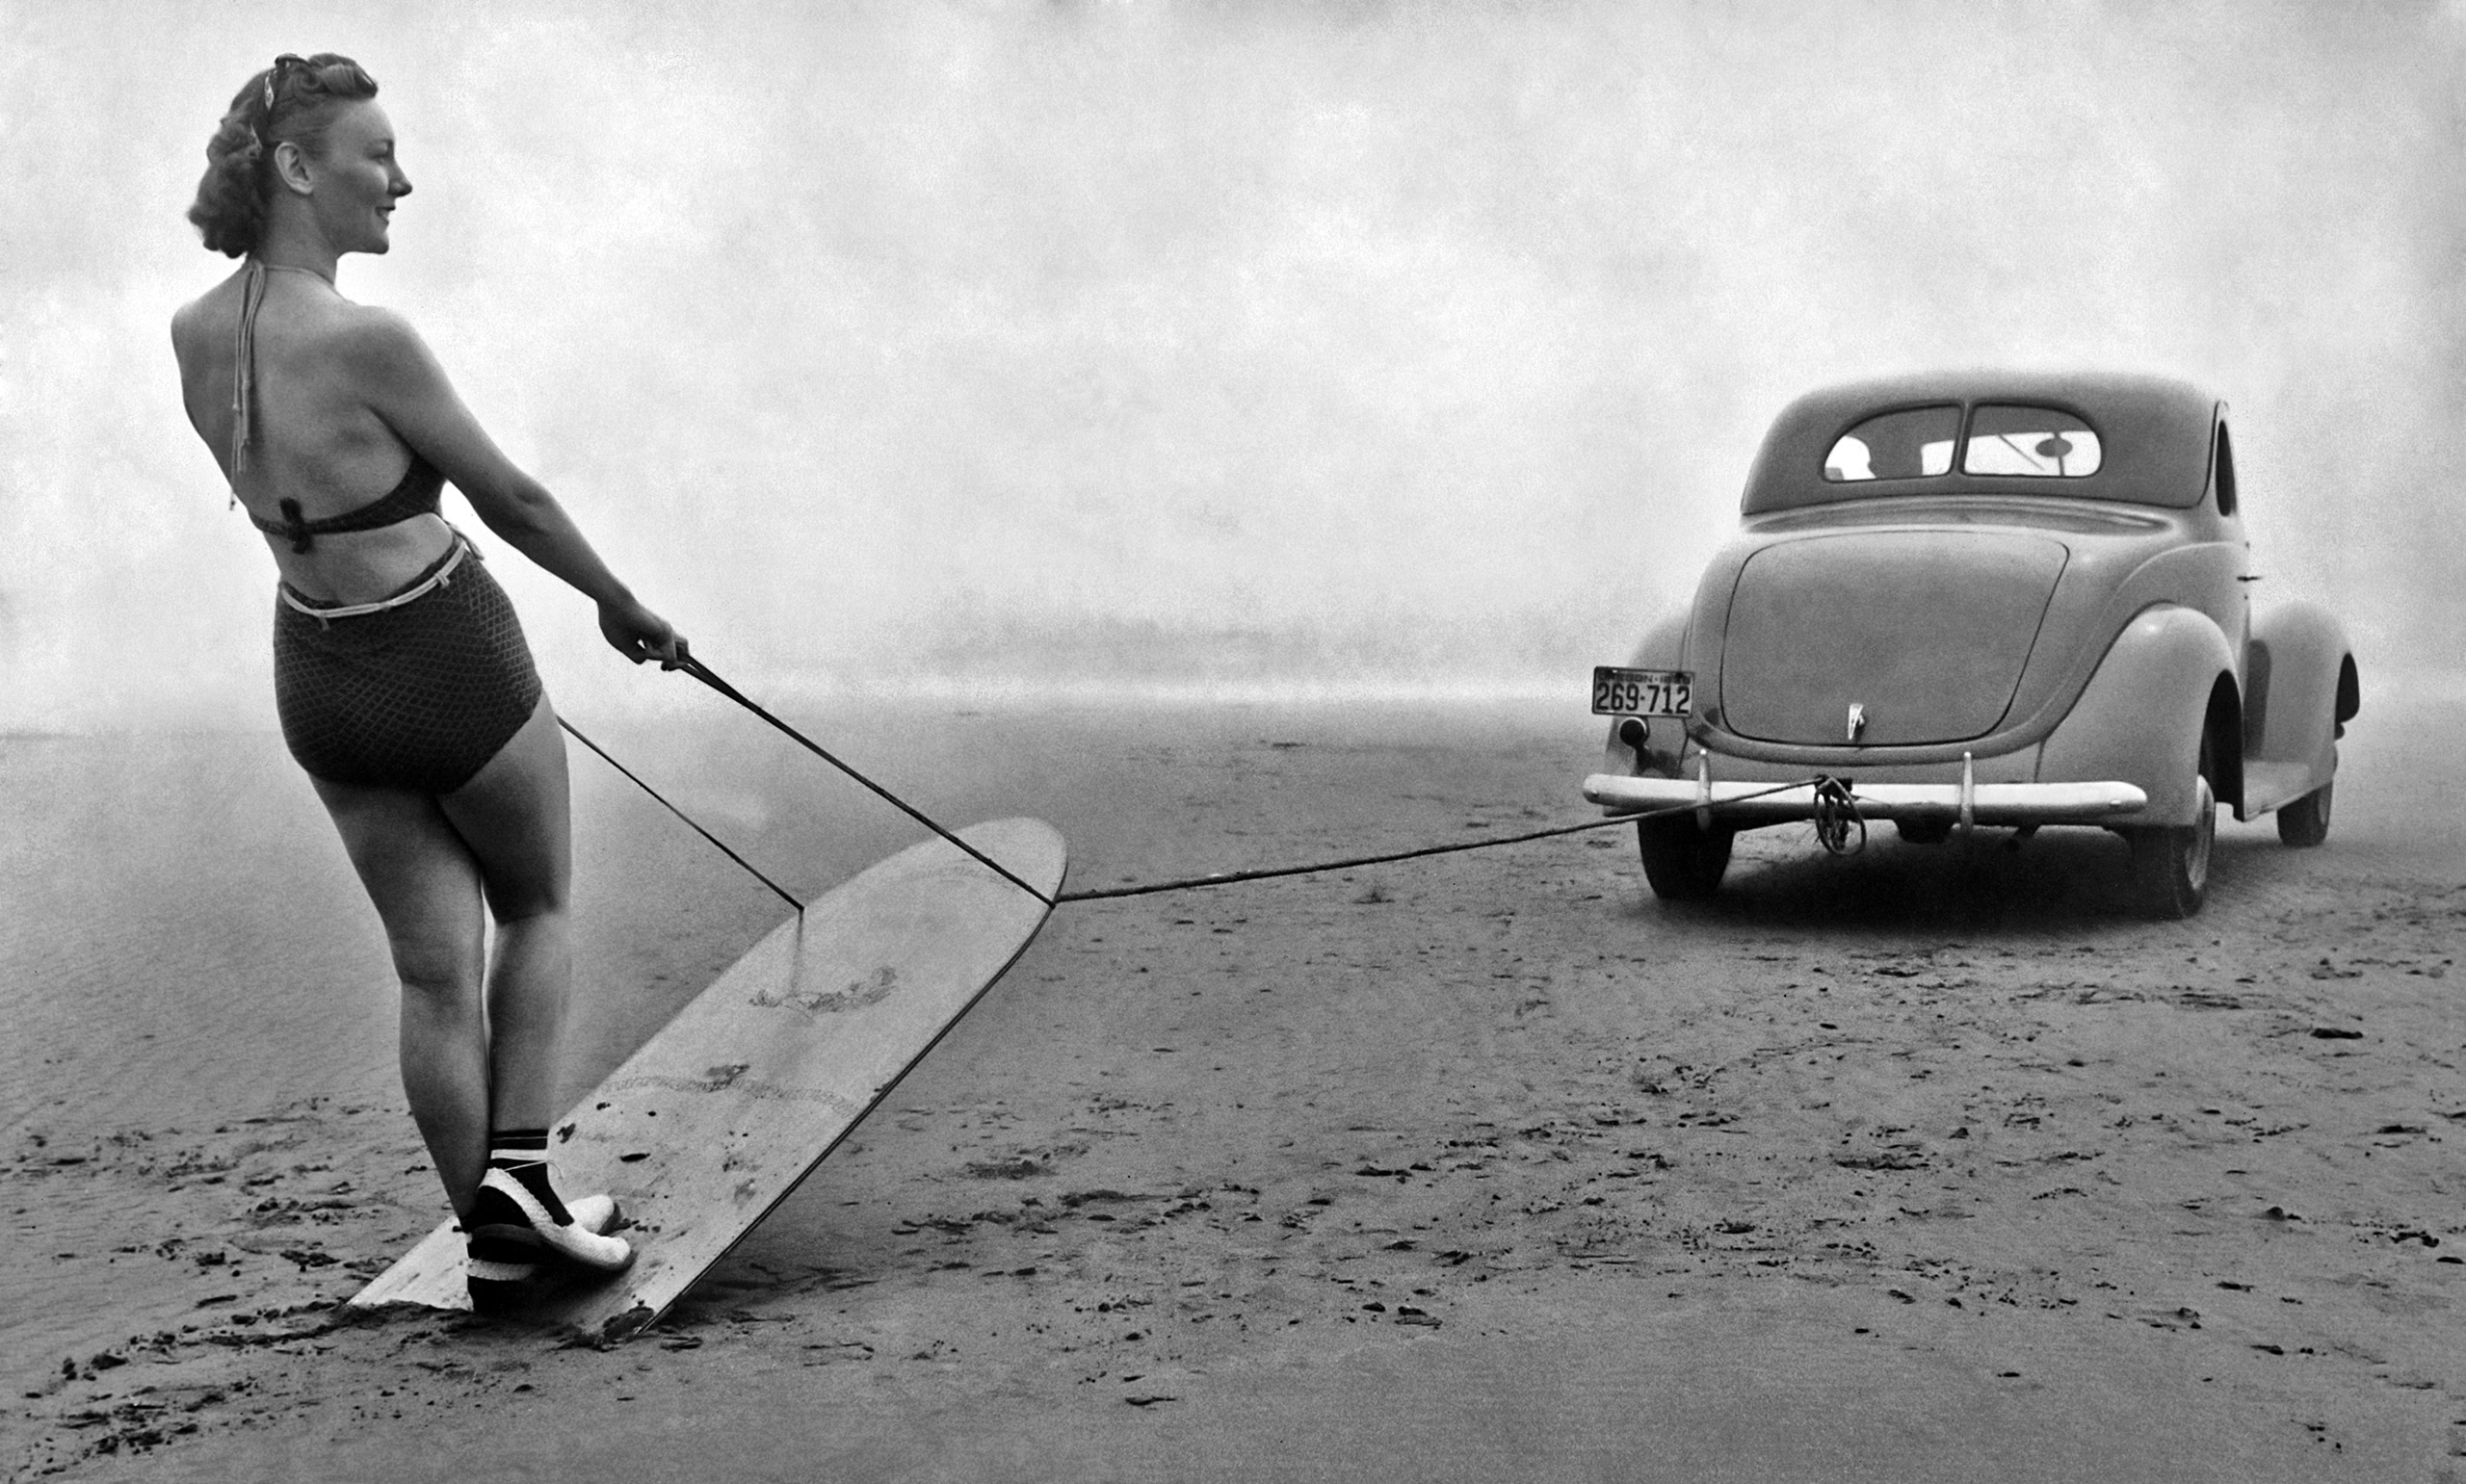 Geraldine Mathis being pulled along on her surfboard by a car driven along the sand near the mouth of the Necanicum River in Oregon circa 1940.